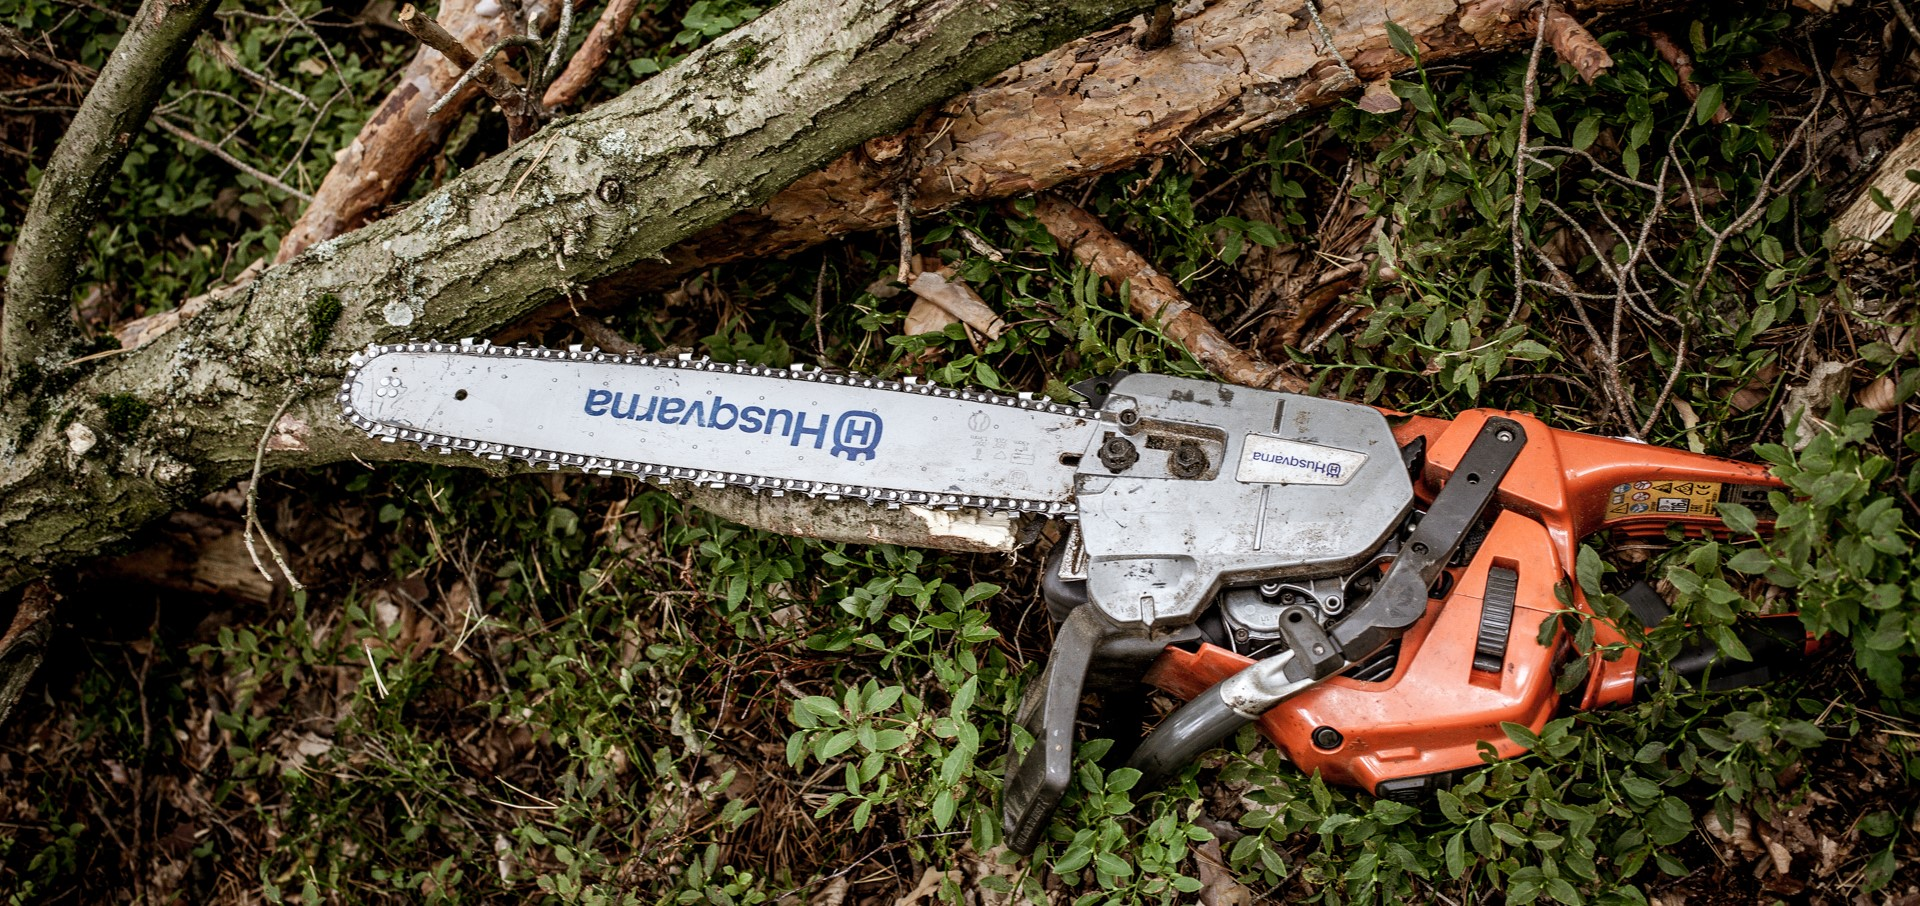 Applying Lessons from a Chainsaw to Your Law Practice